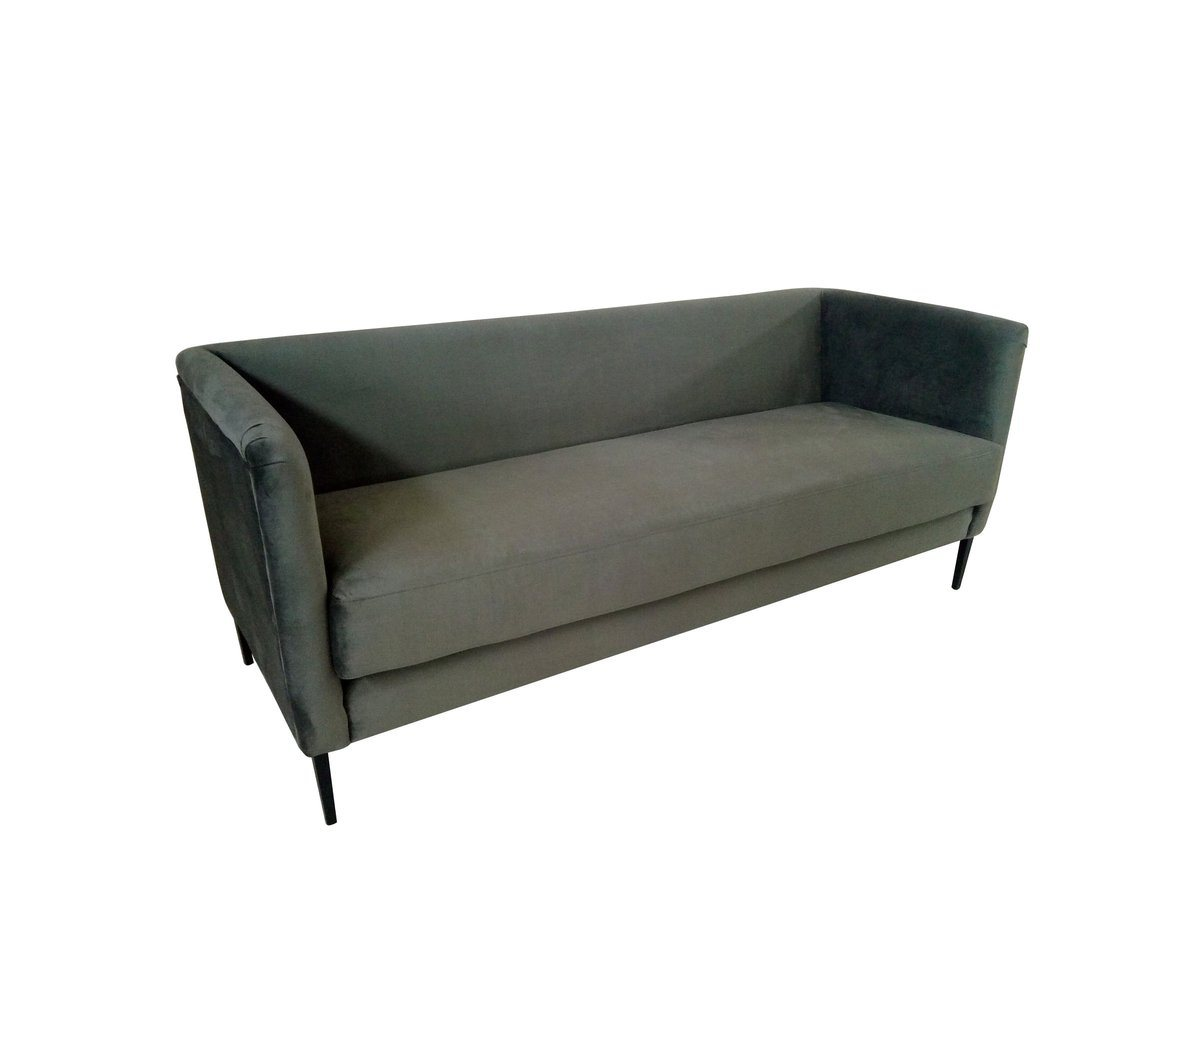 MARILYN SOFA-GRAPHITE - Showhome Furniture